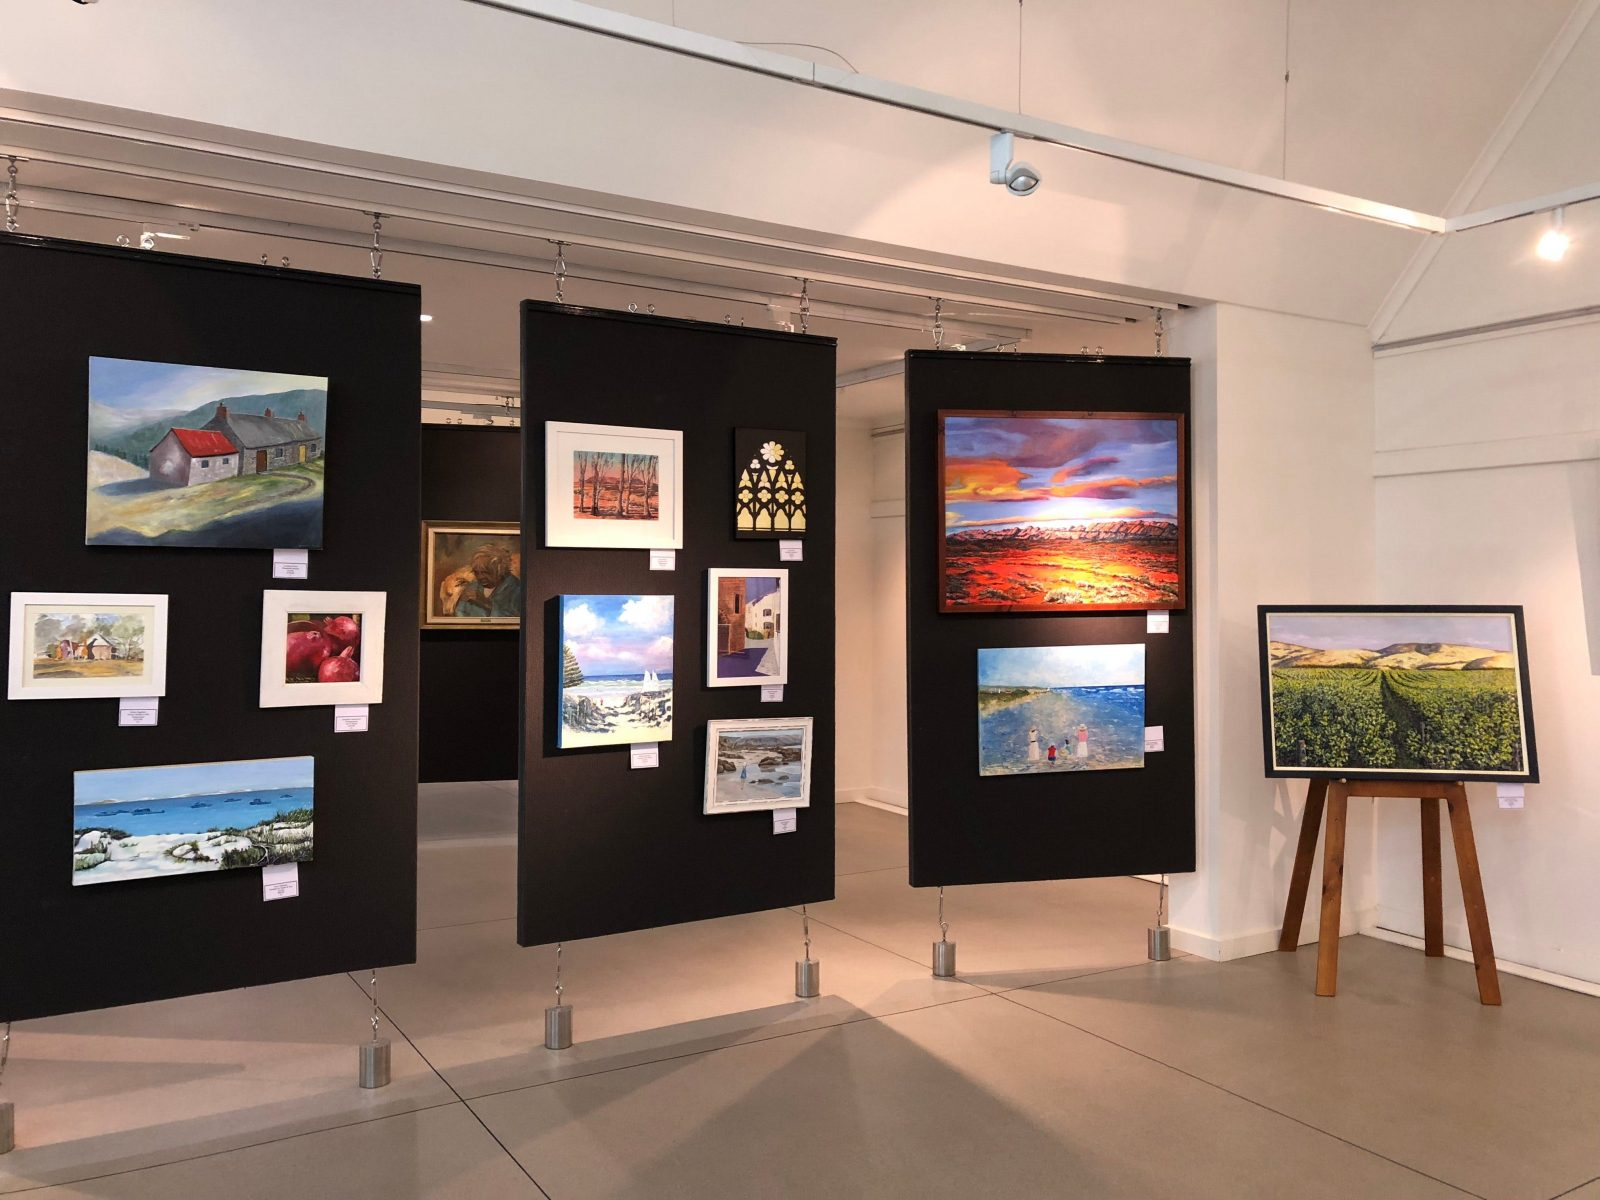 SALA 2018 at The Ascot Community Exhibition Art Gallery